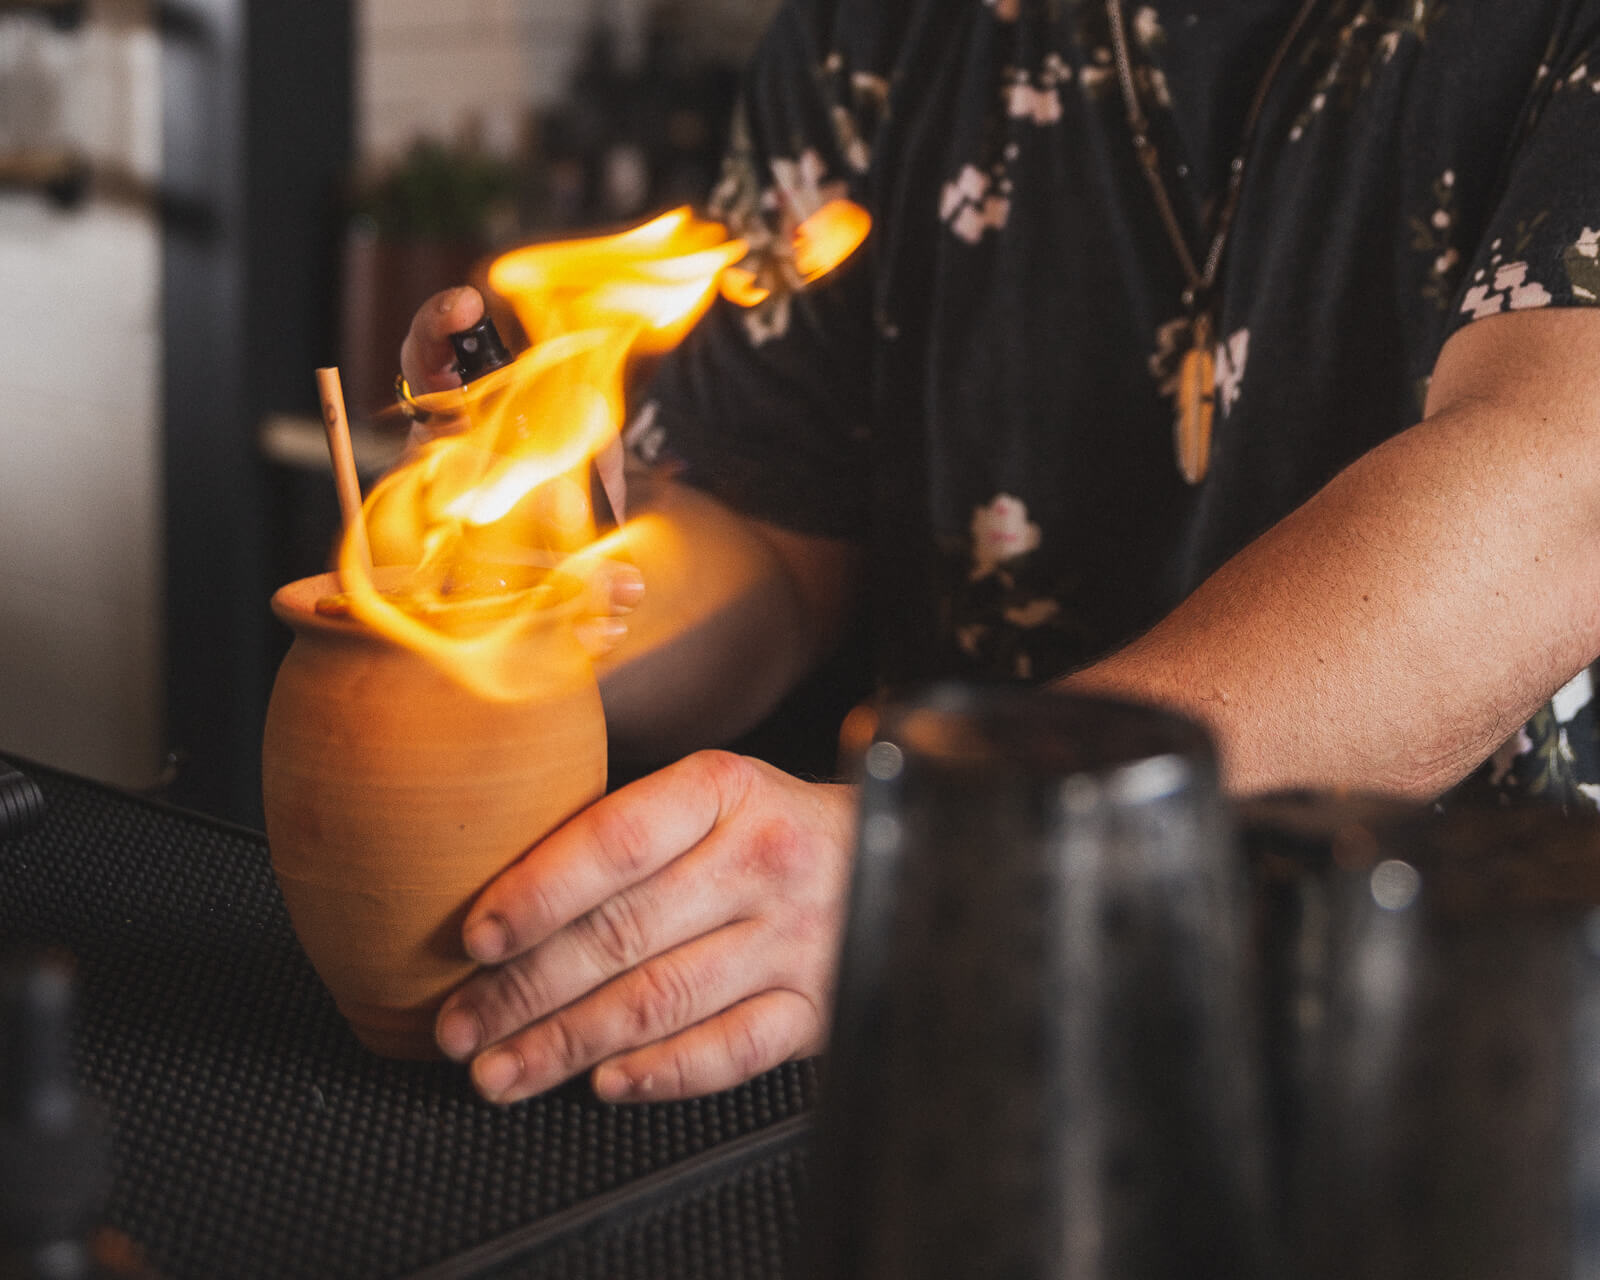 The bartender lights a flamed garnish for a high end drink at the bar at echo spirits